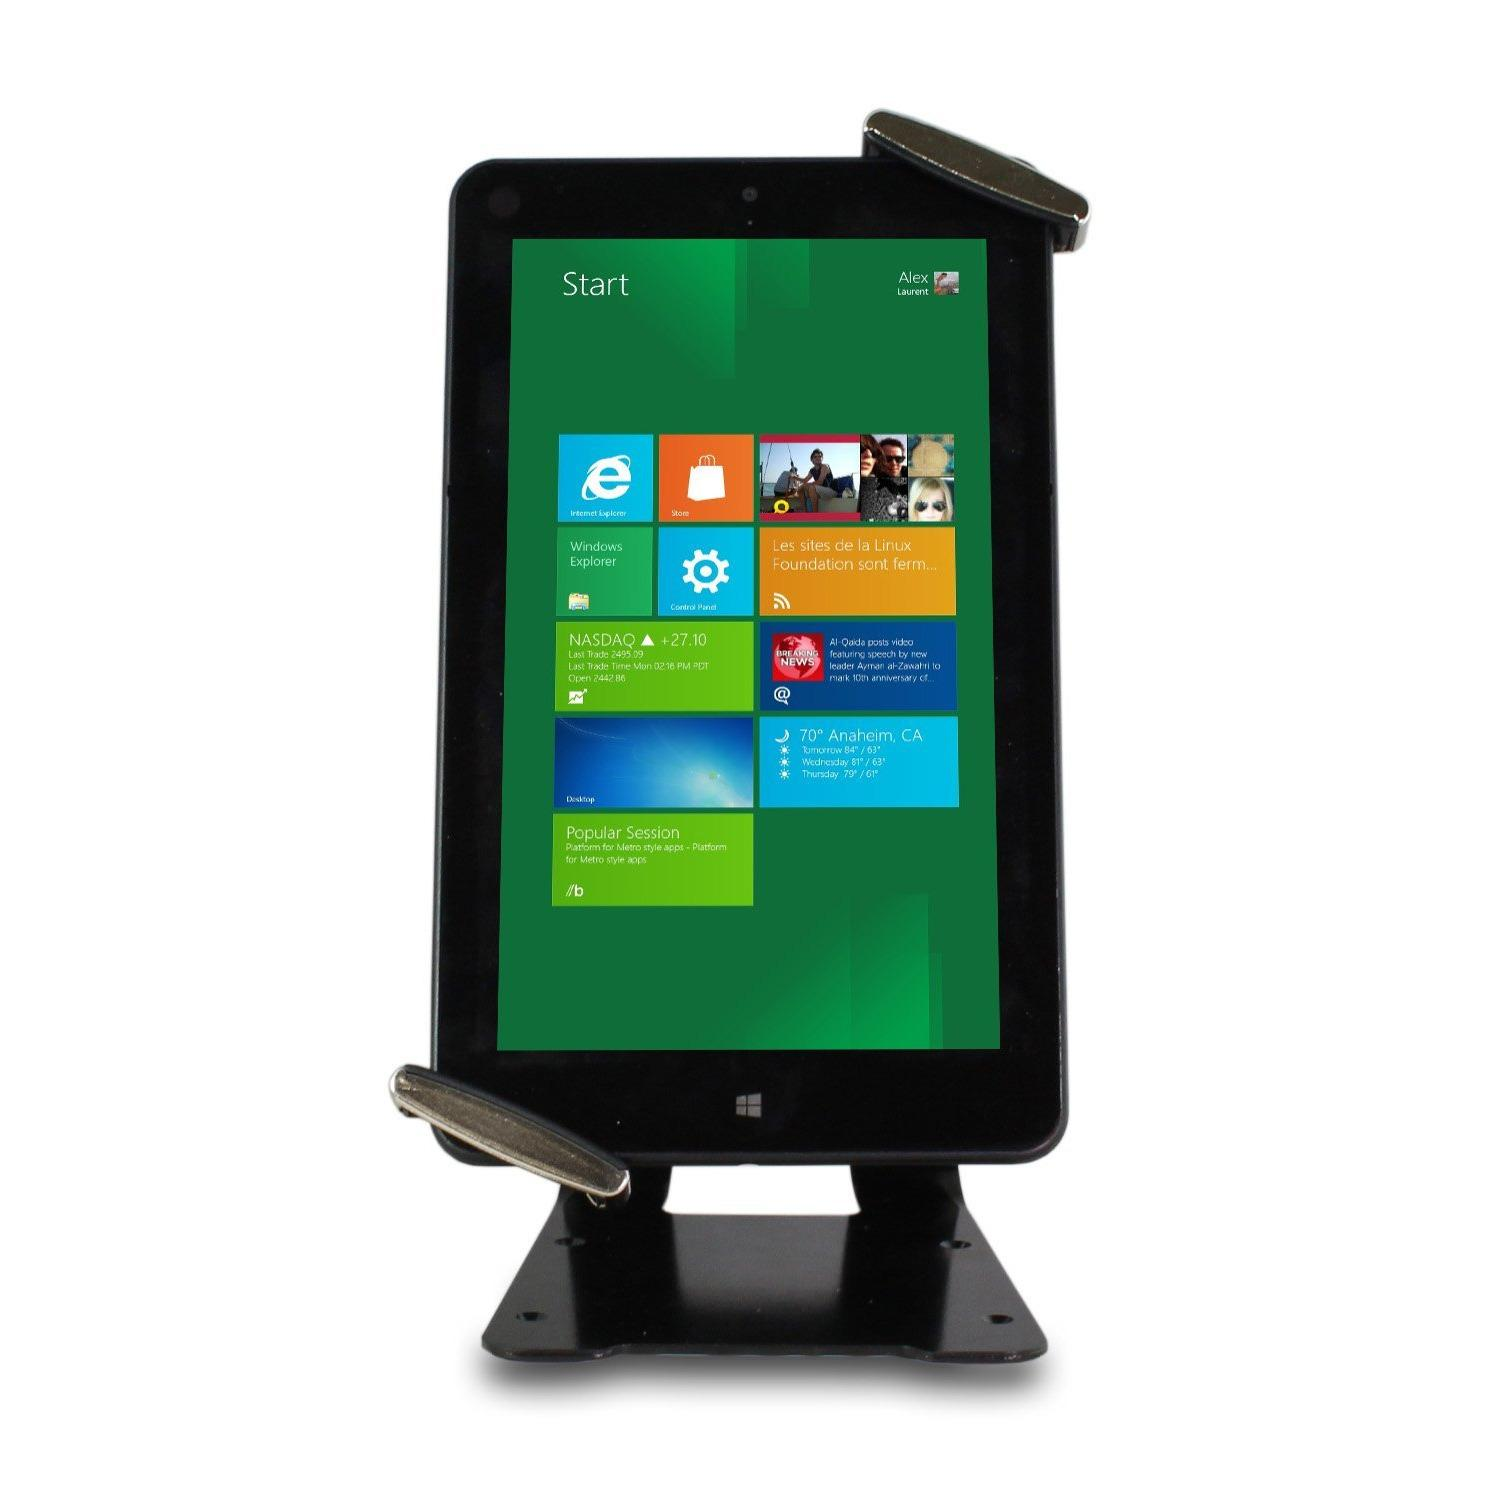 Navy Club Tas Selempang Tablet Ipad Up to 10 Inch 8271 - Hitam. Source ... iLock Adjustable Tablet Stand and Security Lock for 7 to 10.1 inch -